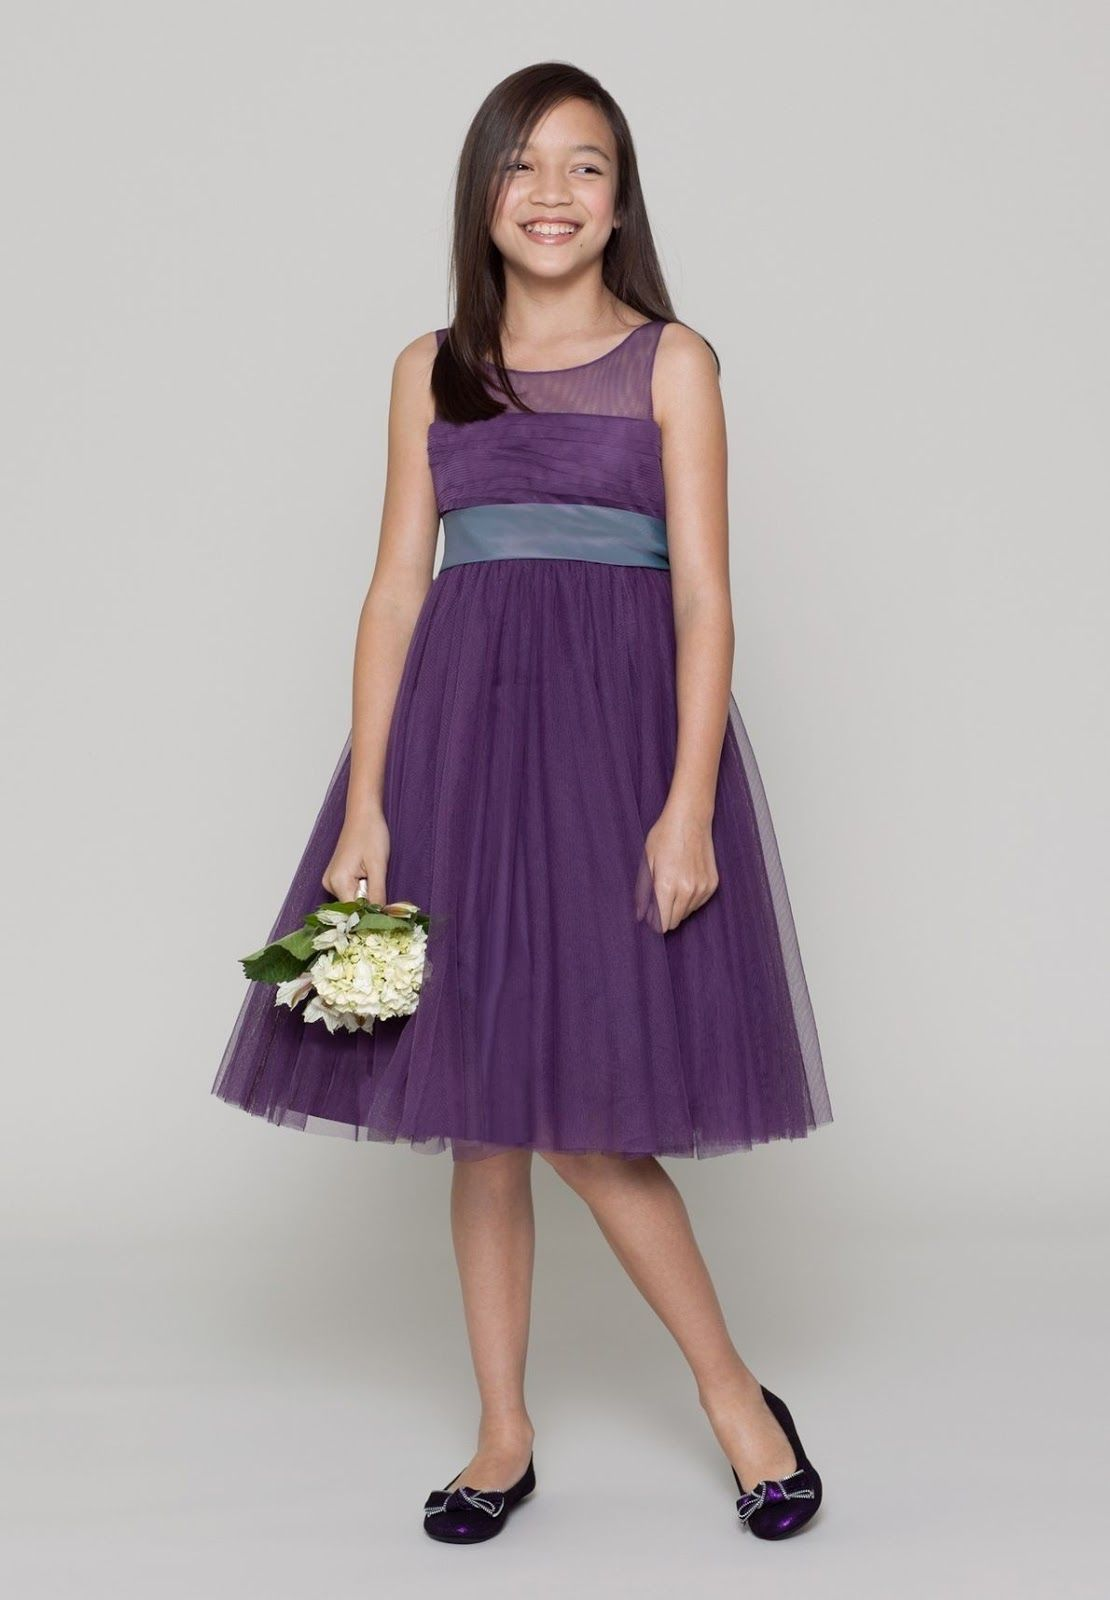 junior bridesmaid dresses | WhiteAzalea Junior Dresses: New ...